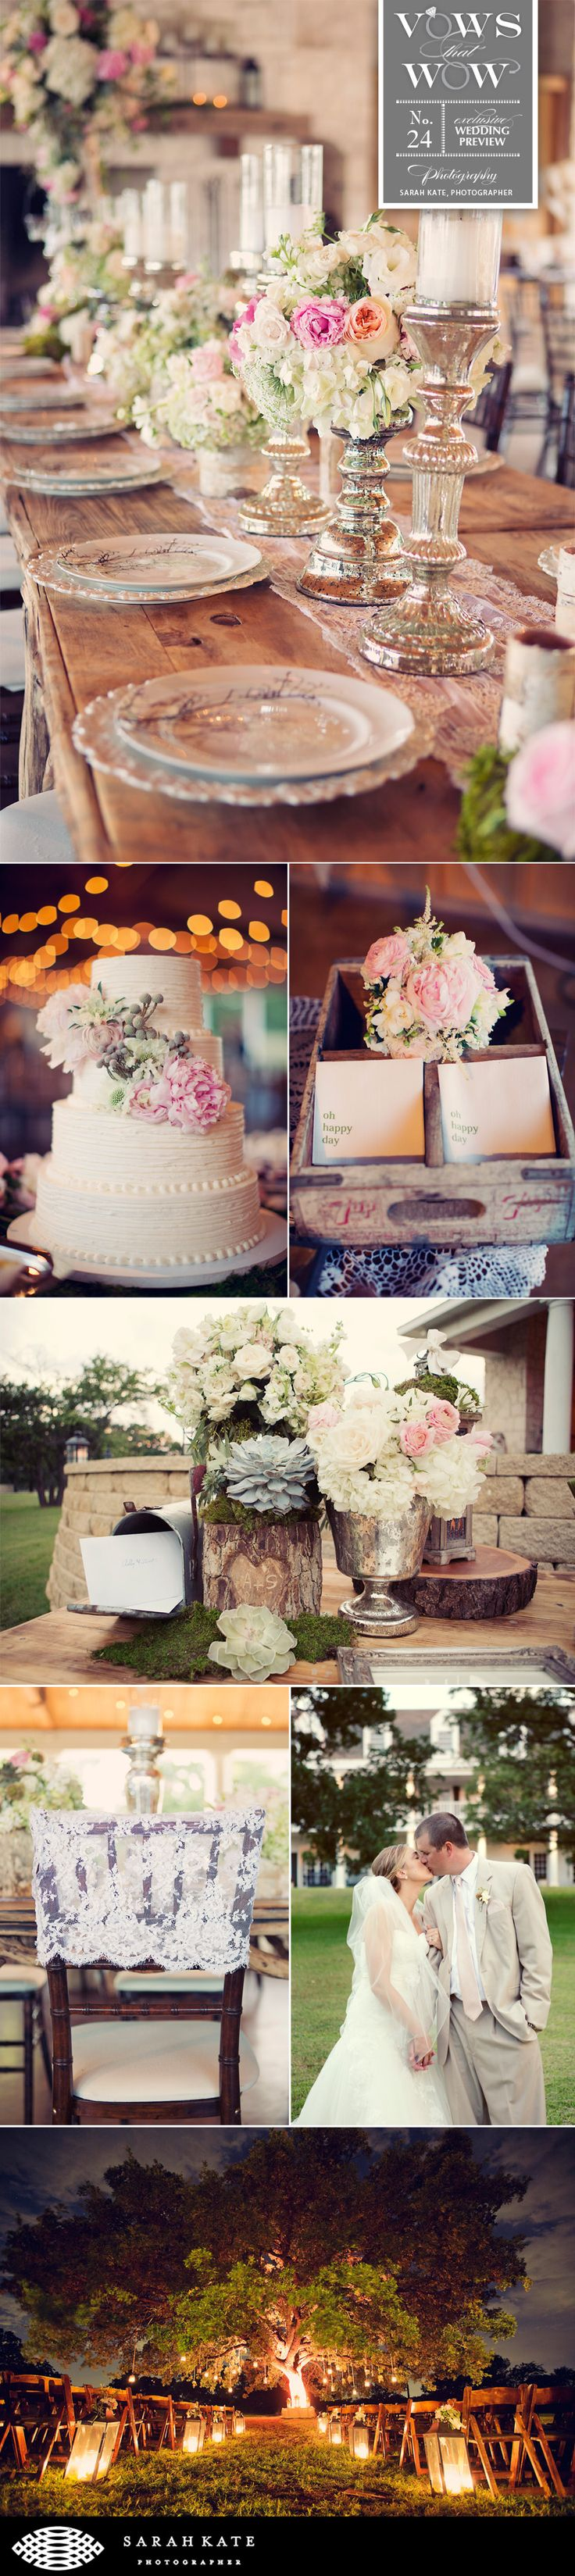 Adorable rustic vintage wedding by Holly Tripp Events at White Oaks Ranch in Pilot Point, Texas.